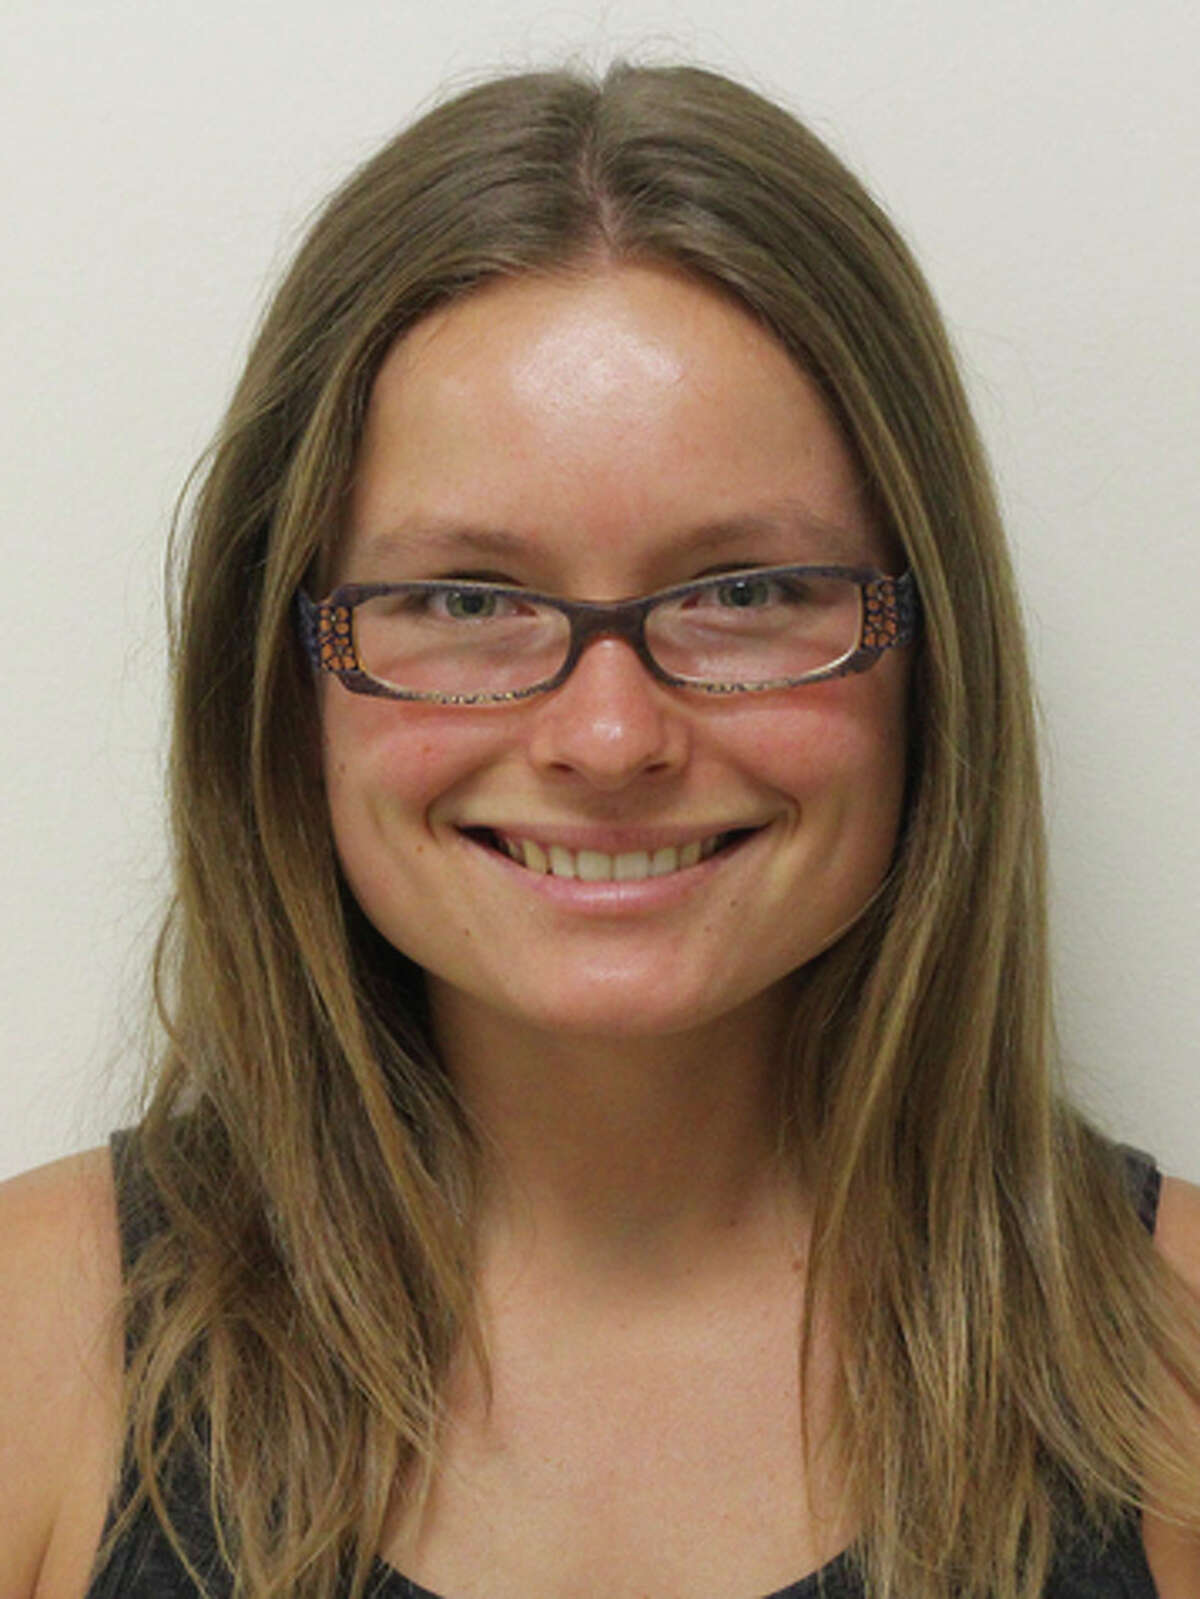 Stanford medical student Maria Birukova, 26, died in a mountain climbing accident.